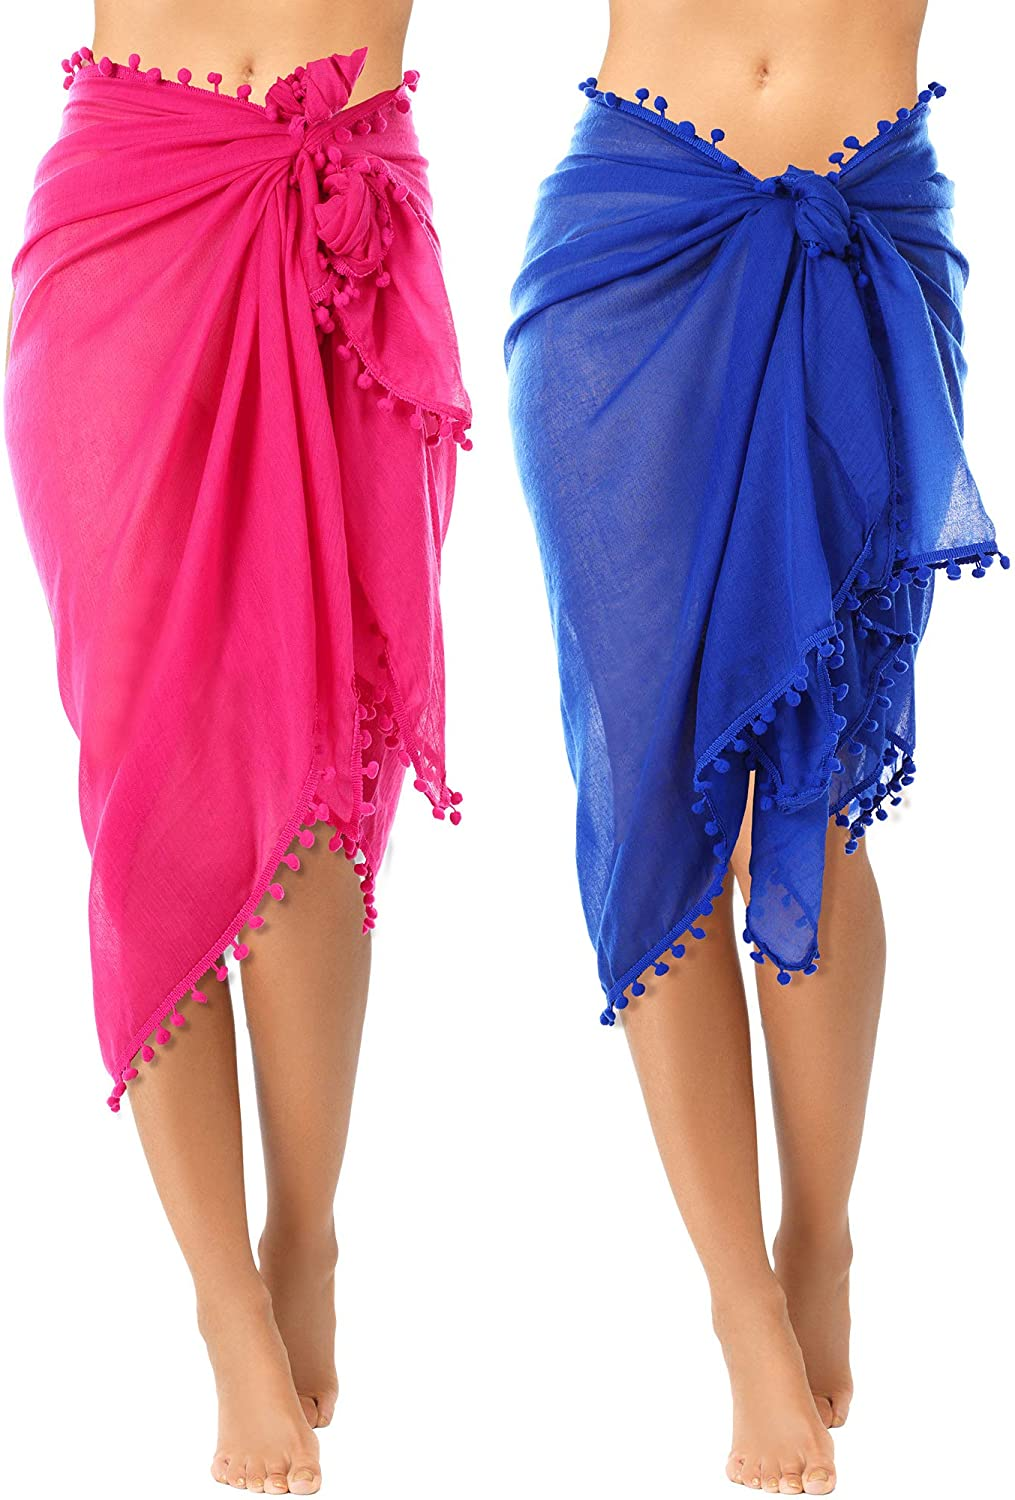 2 Pieces Women Beach Sarong Pareo Swimsuit Cover Ups Chiffon Long Sarong Wrap Pareo with Tassel for Women Girls